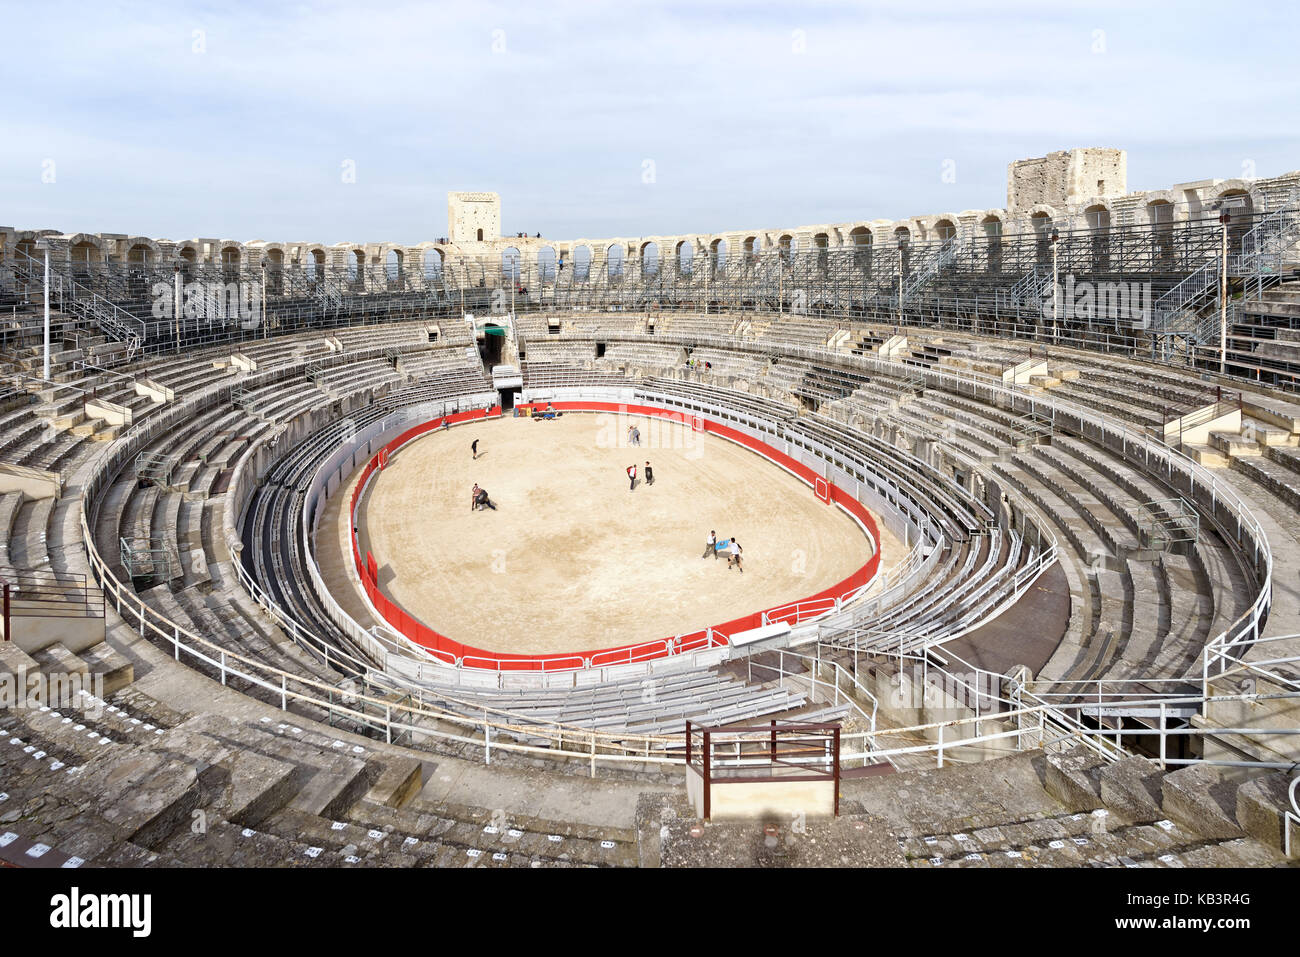 France, Bouches du Rhone, Arles, the Arenas, Roman Amphitheatre of 80-90 AD, listed as World Heritage by UNESCO - Stock Image